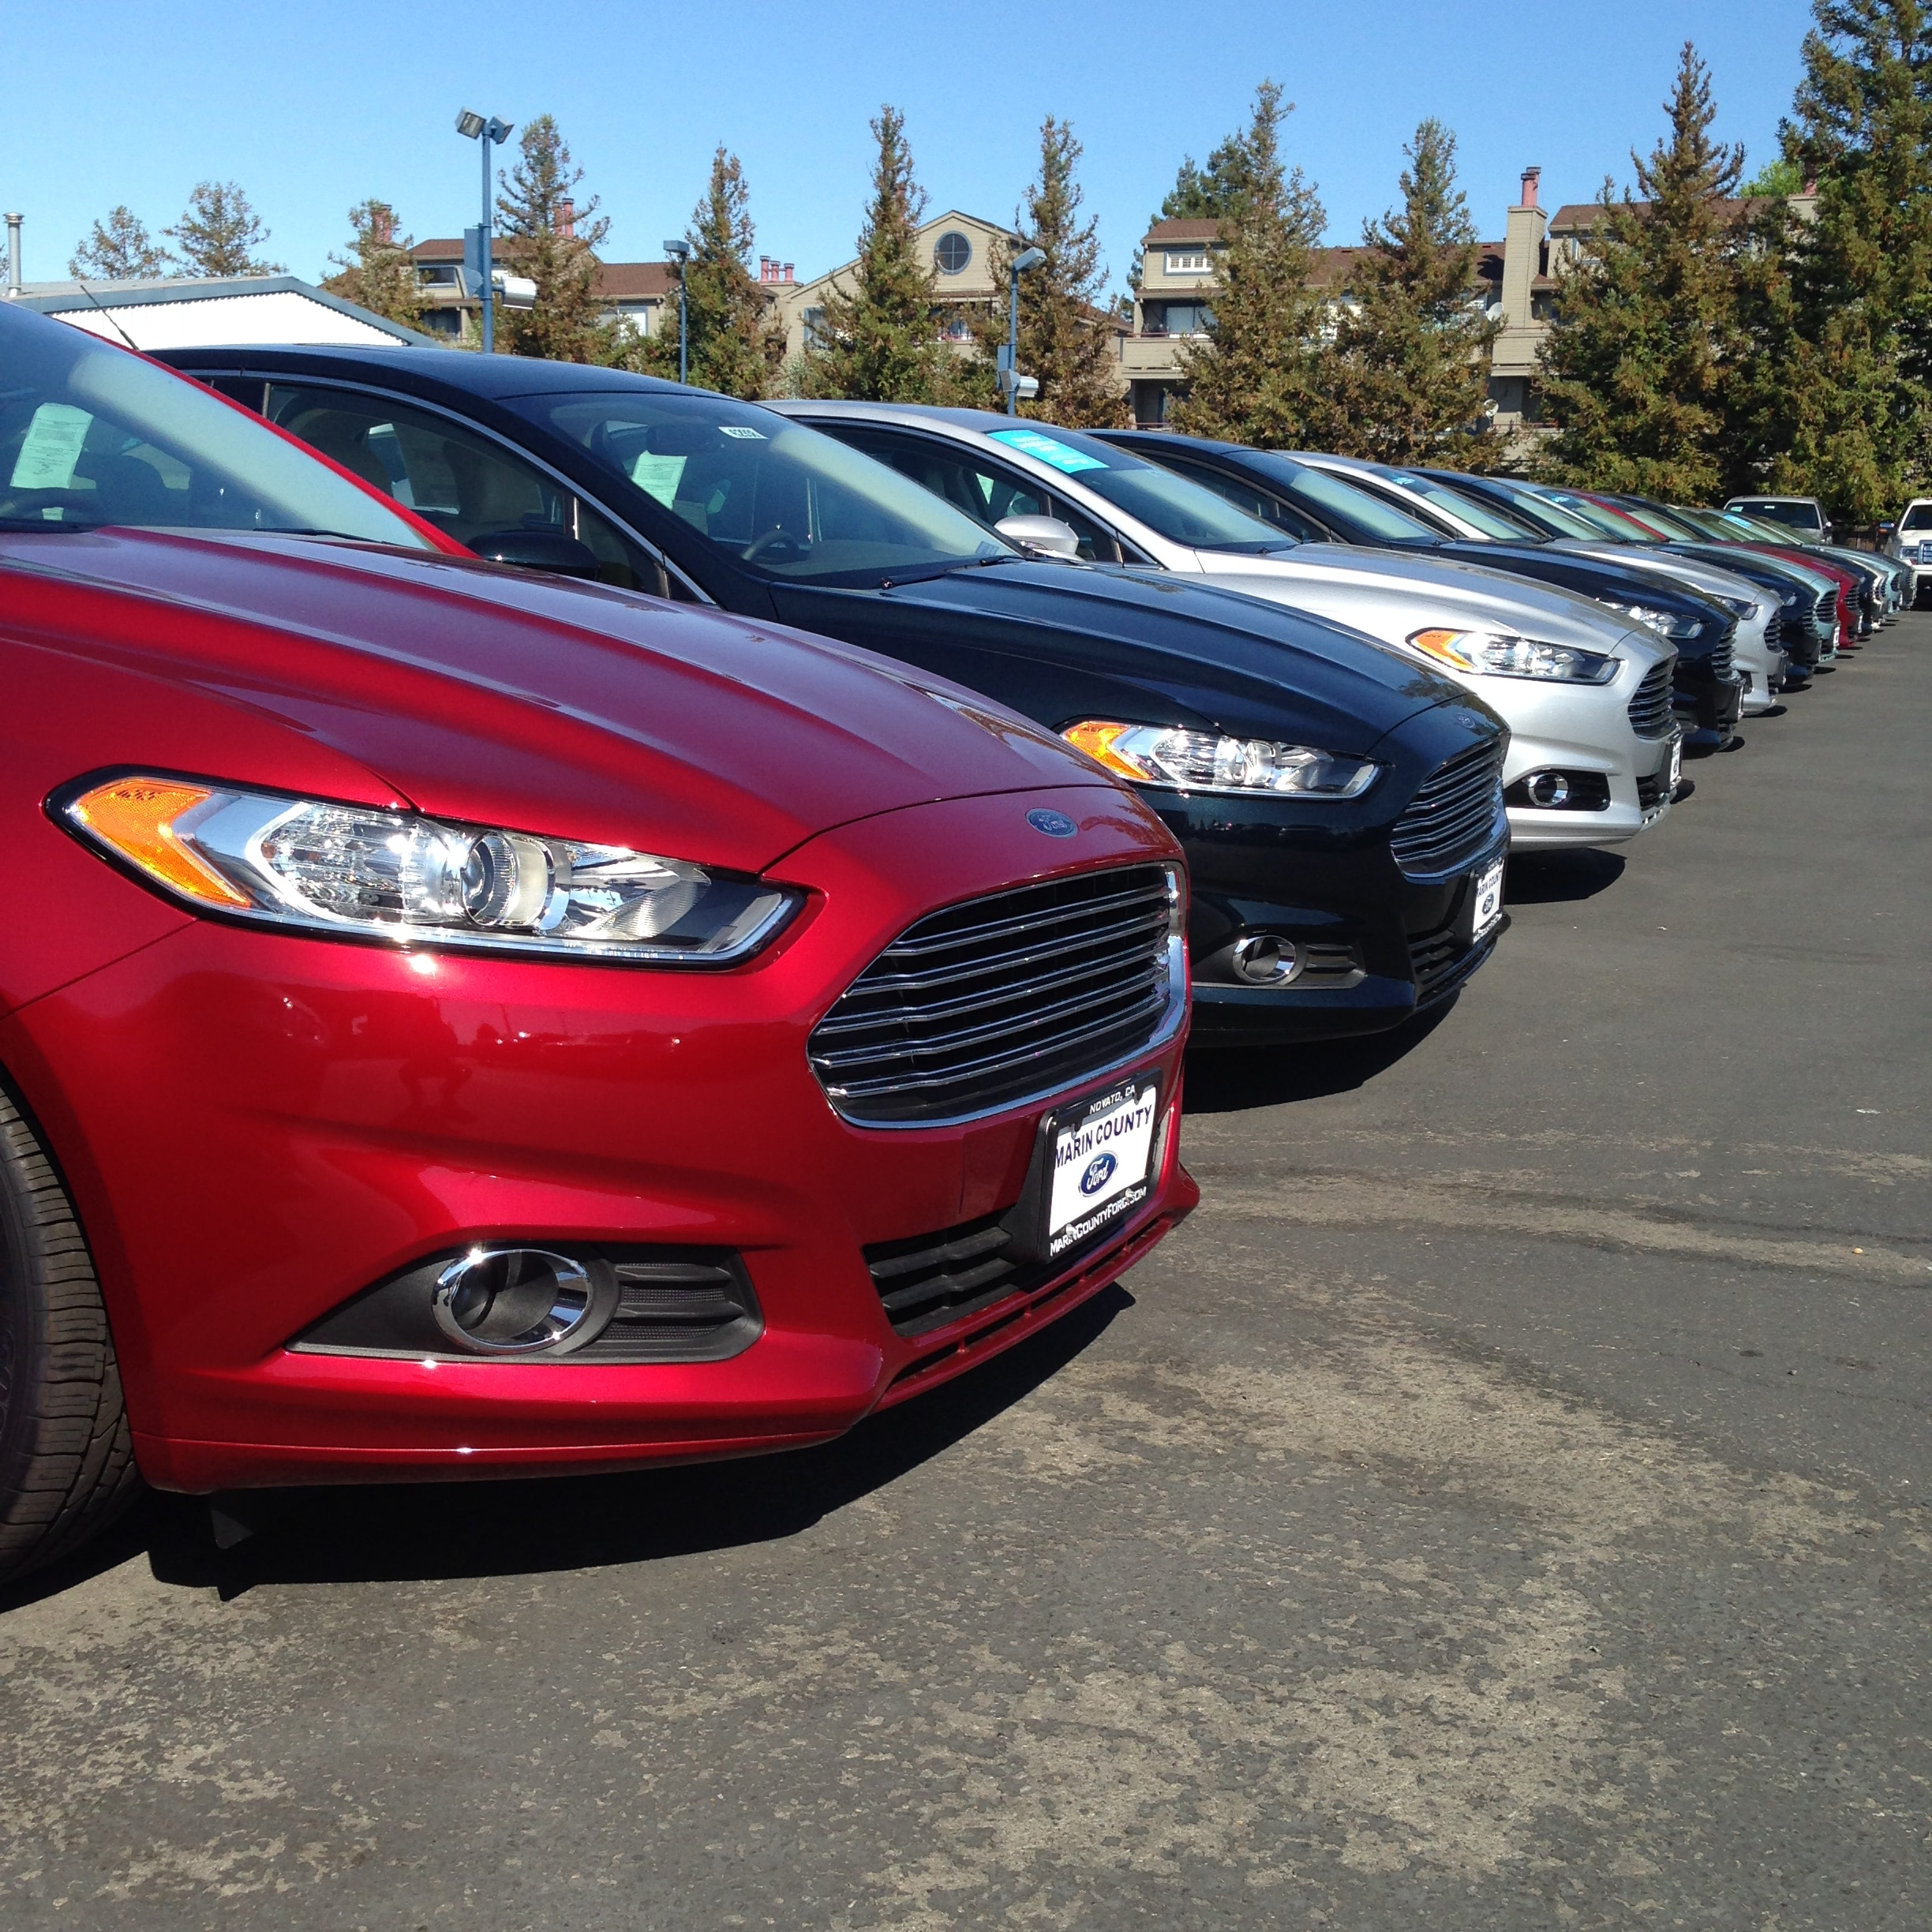 Ford Dealerships Los Angeles: Ford Dealership San Rafael Ca